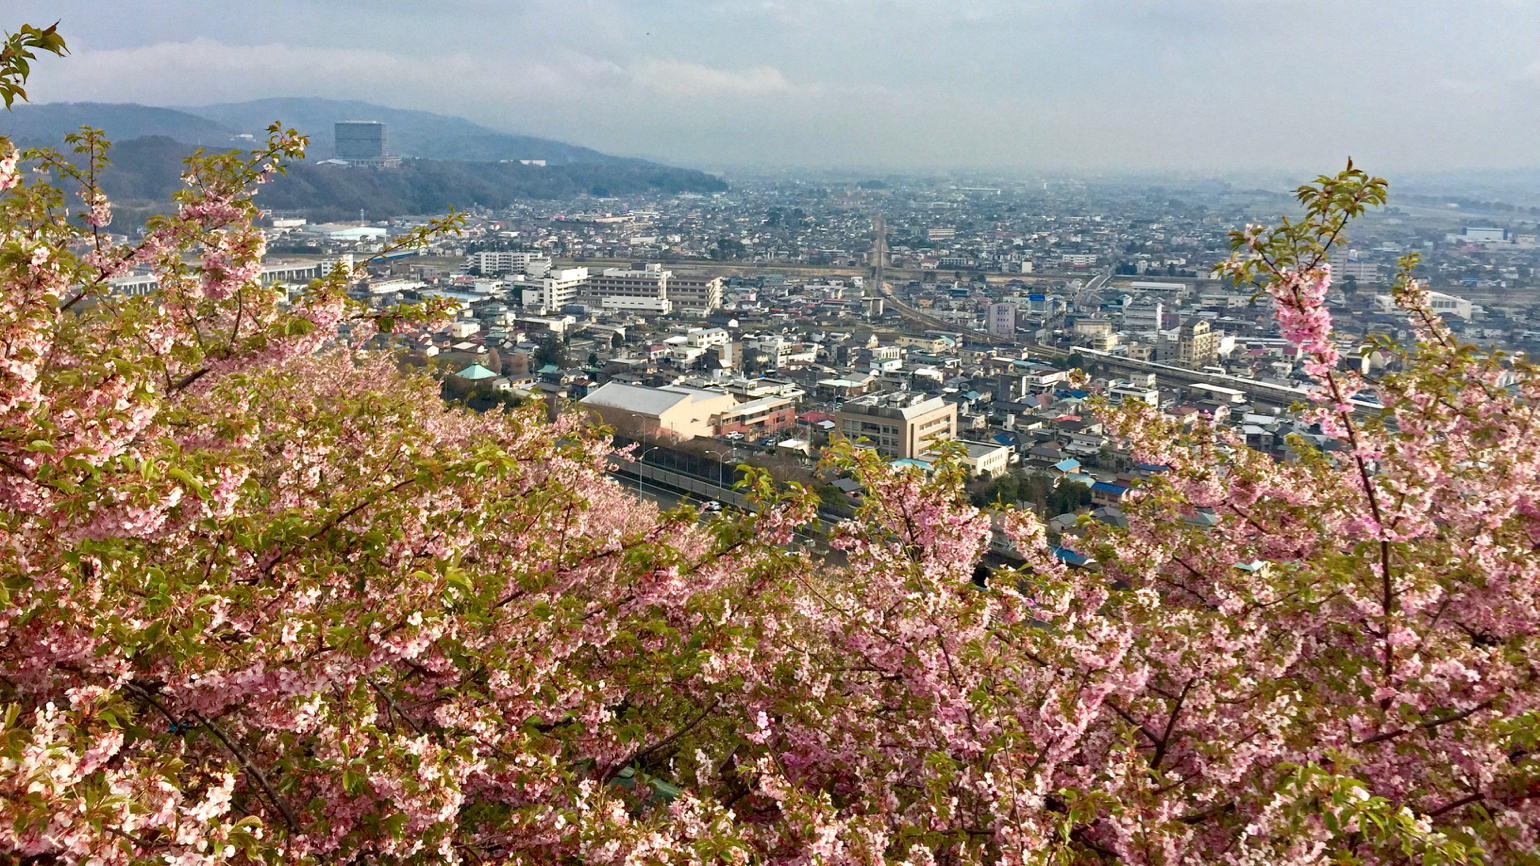 View on Matsuda from the hill Matsudayama covered with cherries